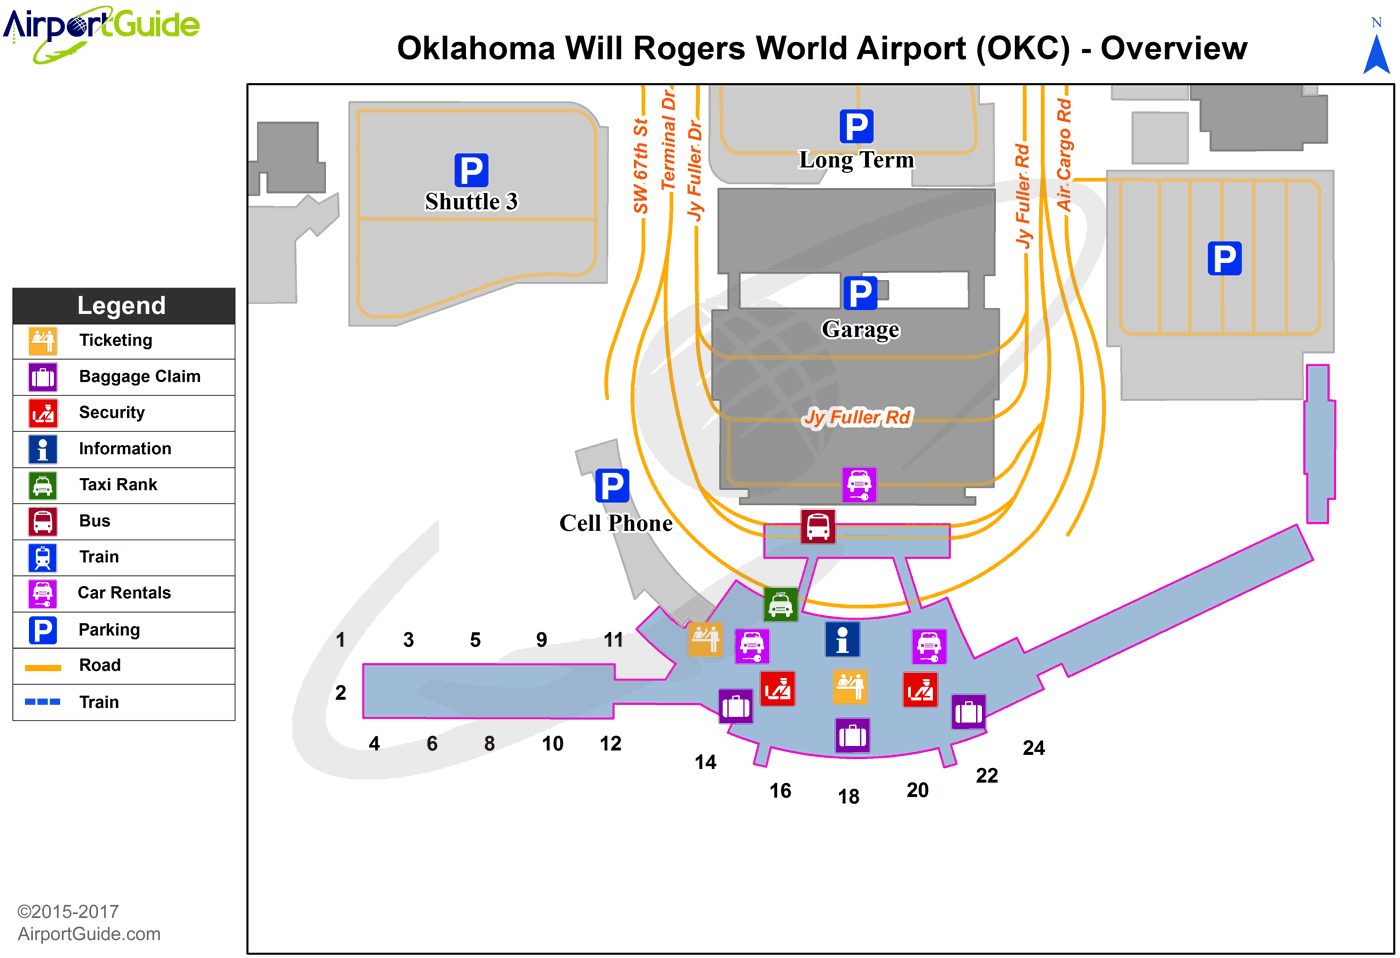 will rogers world airport map Oklahoma City Will Rogers World Okc Airport Terminal Maps will rogers world airport map